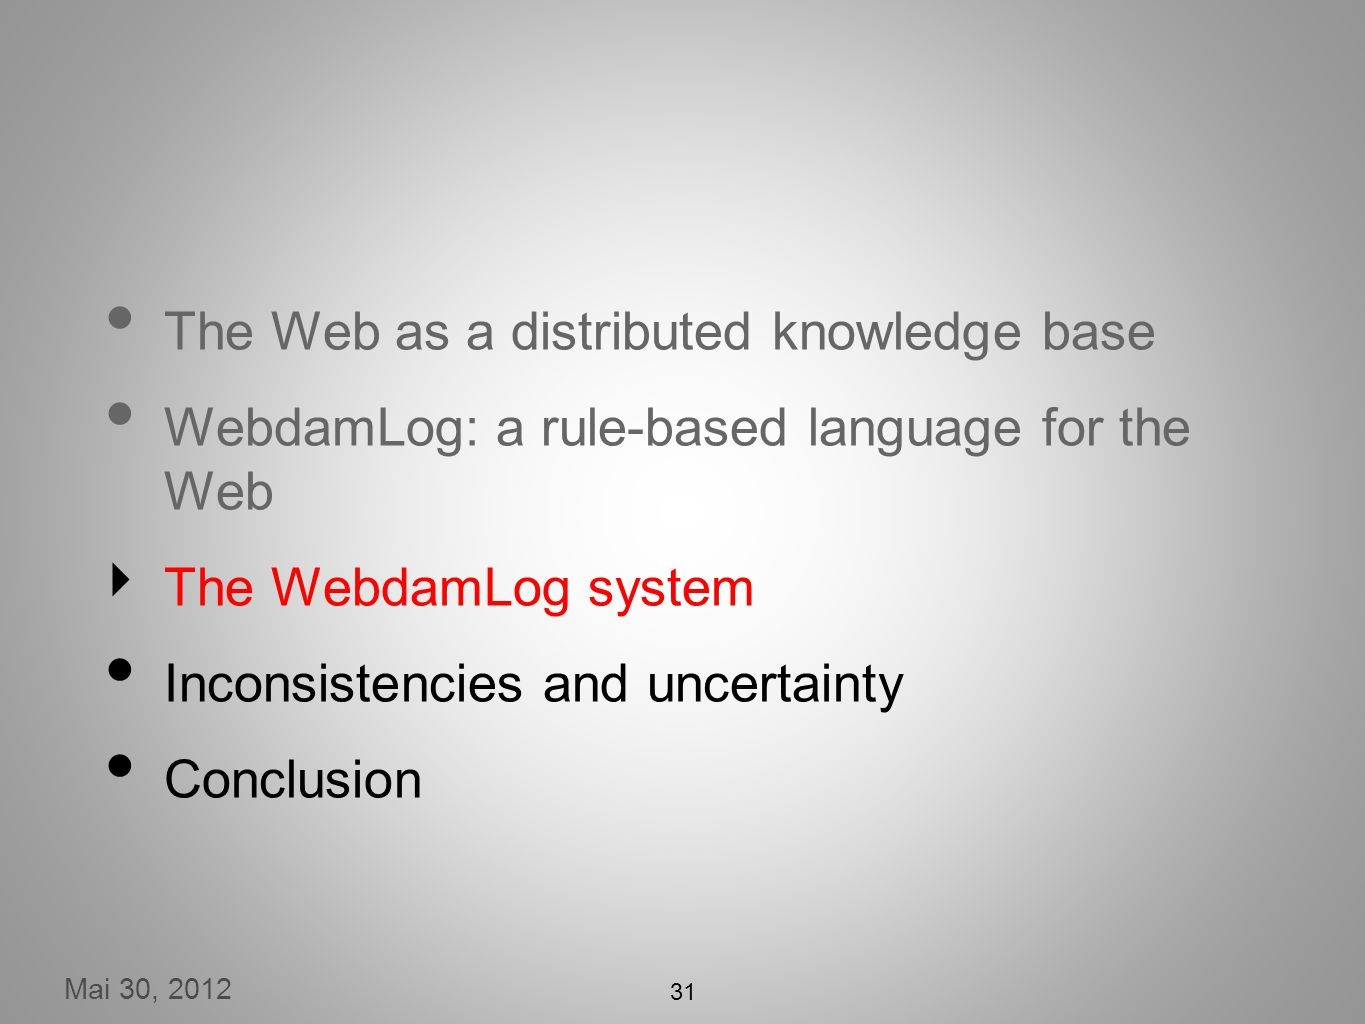 Mai 30, 2012 31 The Web as a distributed knowledge base WebdamLog: a rule-based language for the Web The WebdamLog system Inconsistencies and uncertainty Conclusion